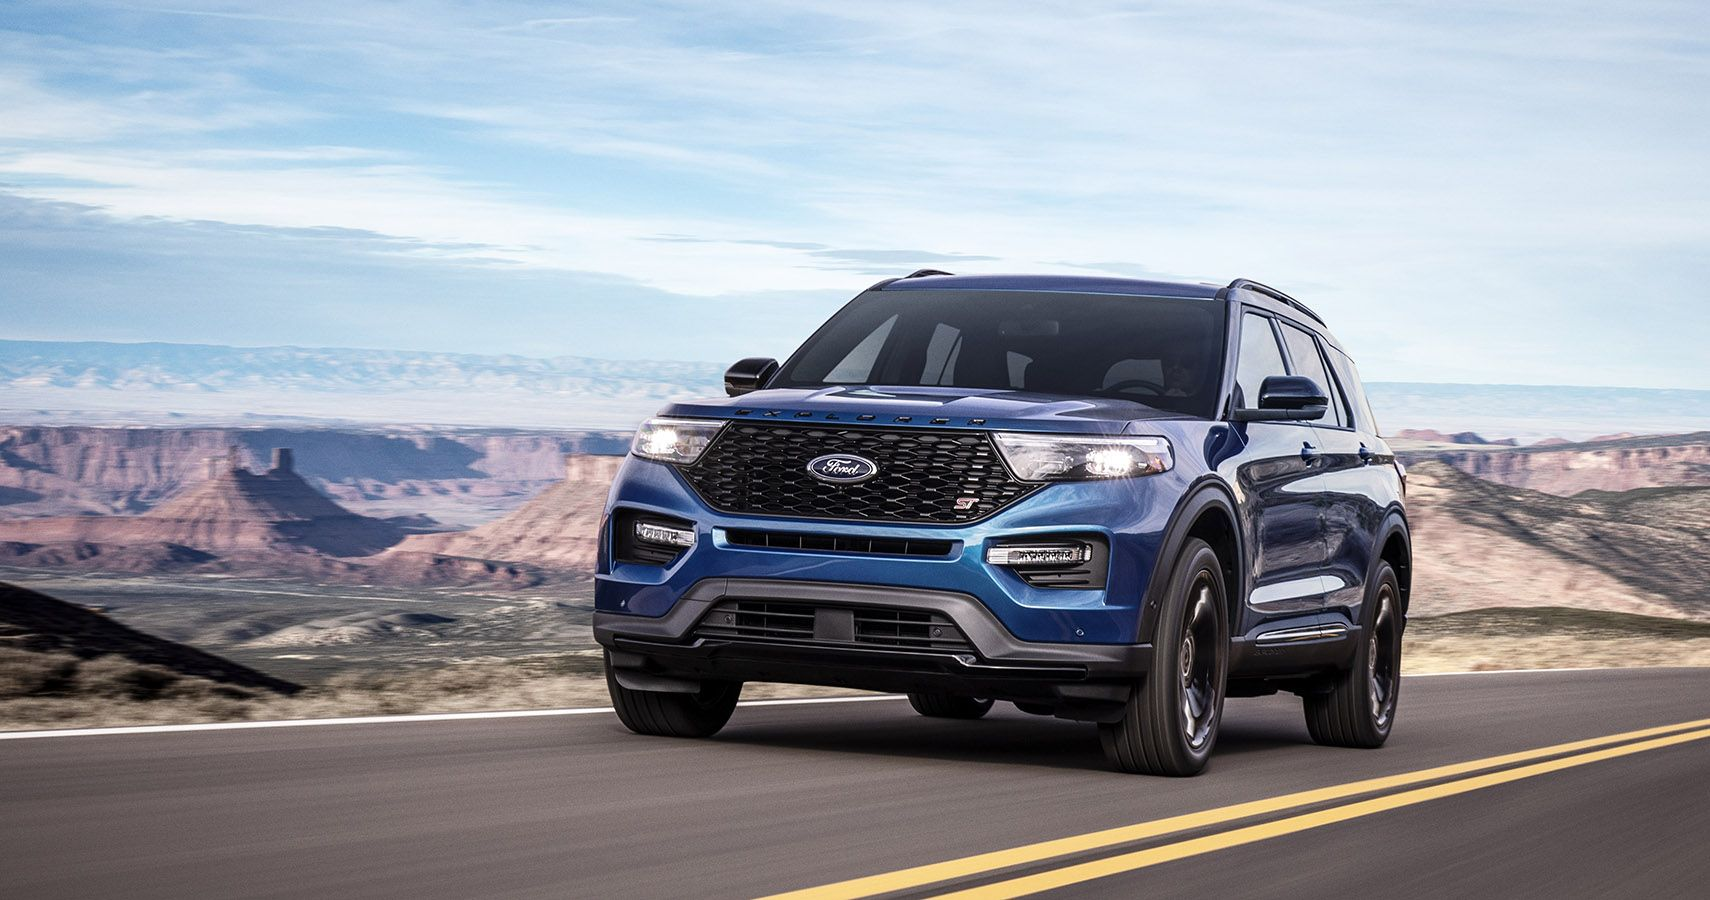 ford offers new appearance package for 2021 explorer xlt